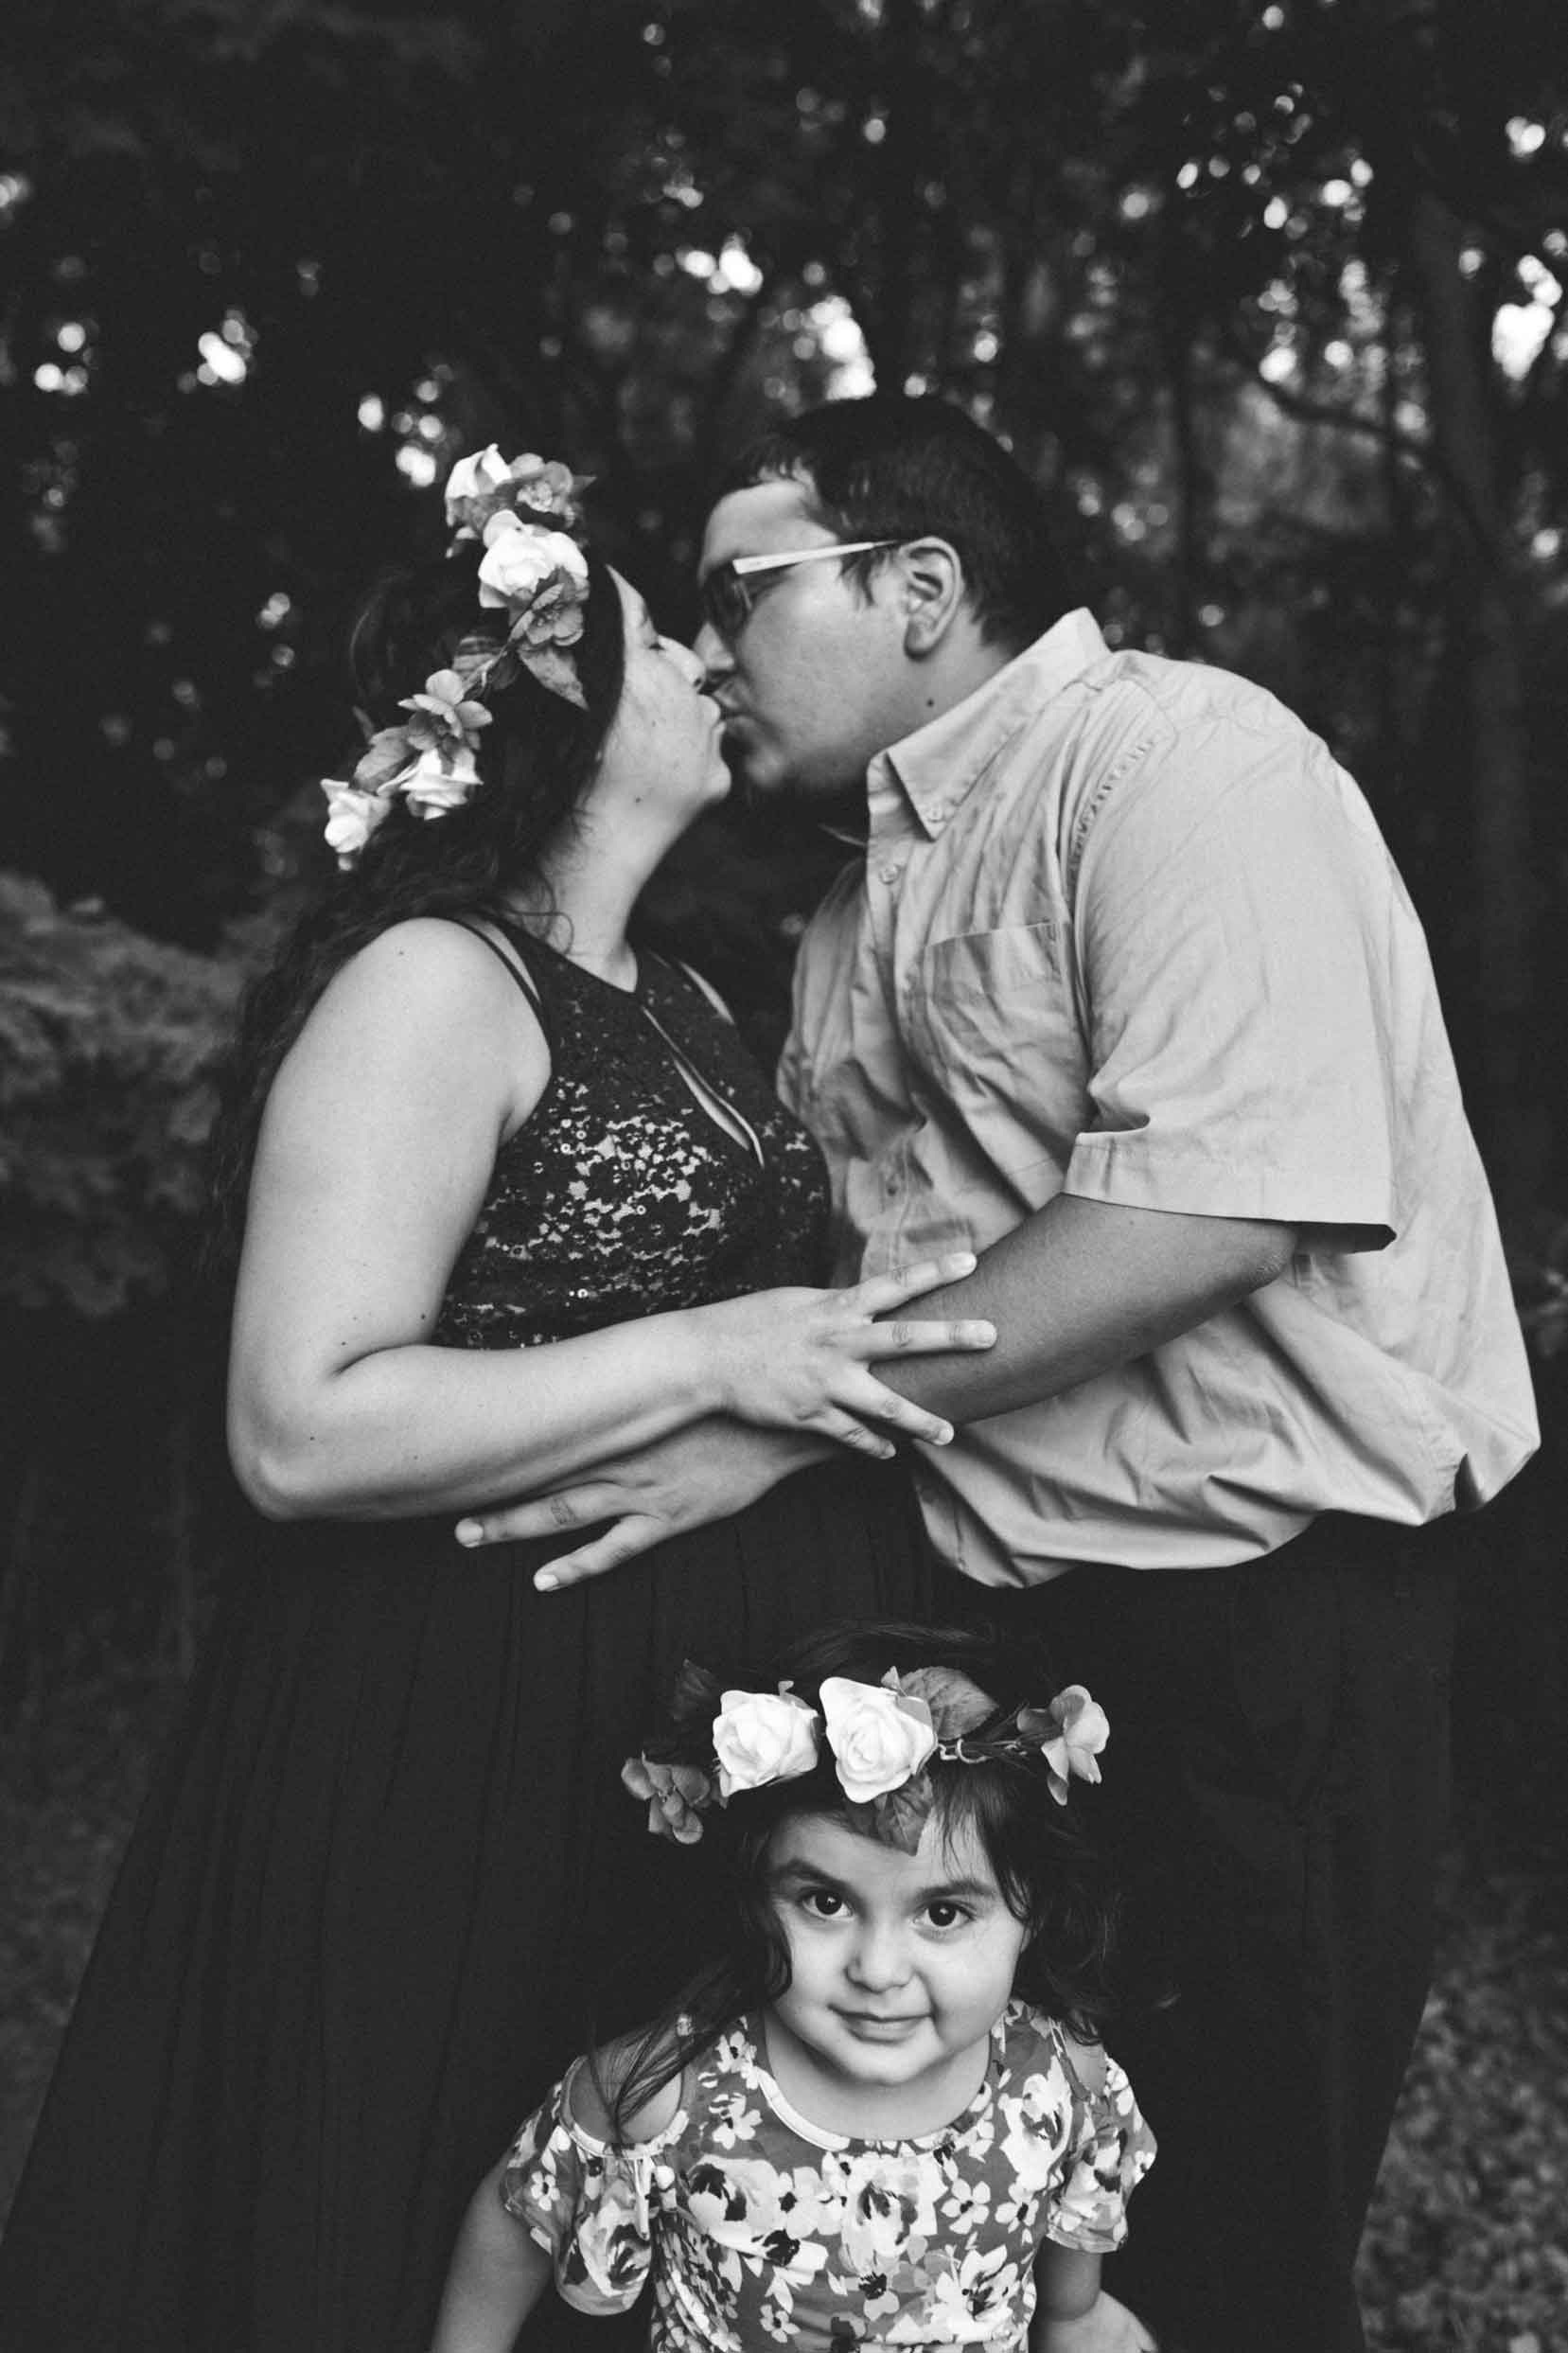 mom-and-dad-kiss-girl-wearning-floral-crown-hamilton.jpg